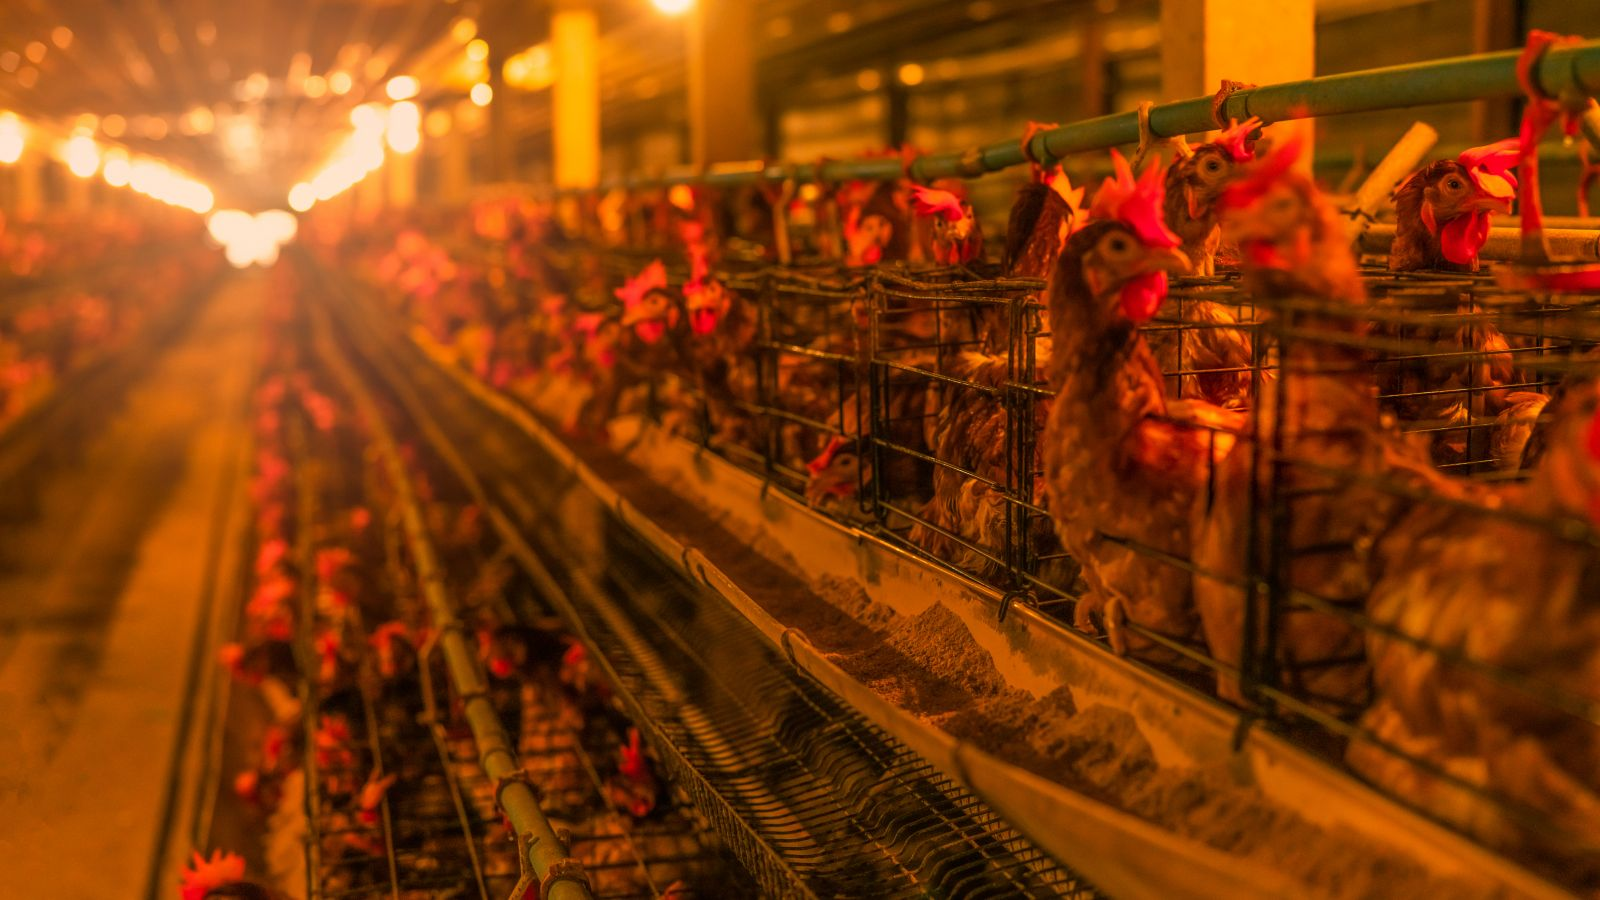 Cage systems with chickens